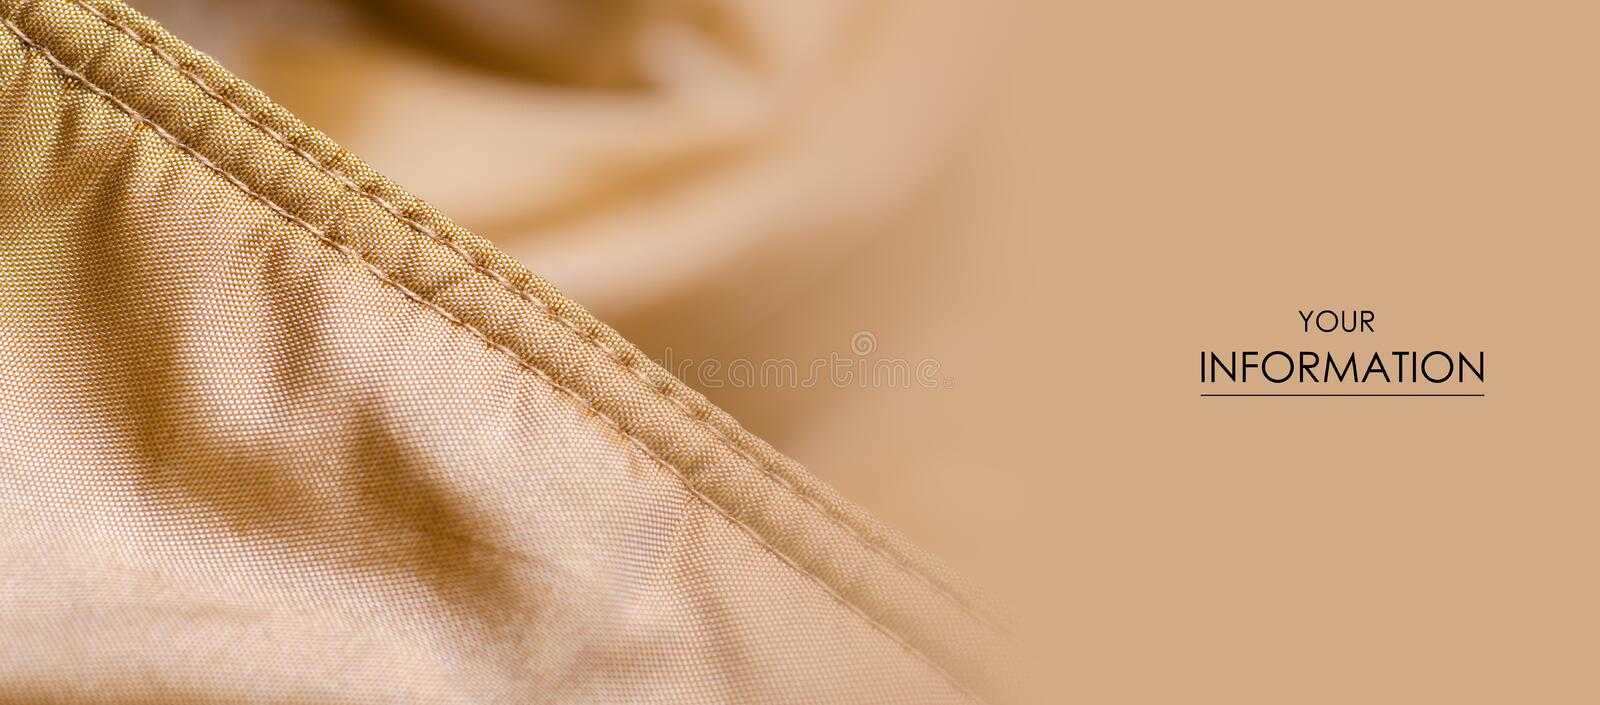 Fabric material textile texture golden seam  blur background. Fabric material textile texture golden seam jacket lining macro pattern blur background stock photos